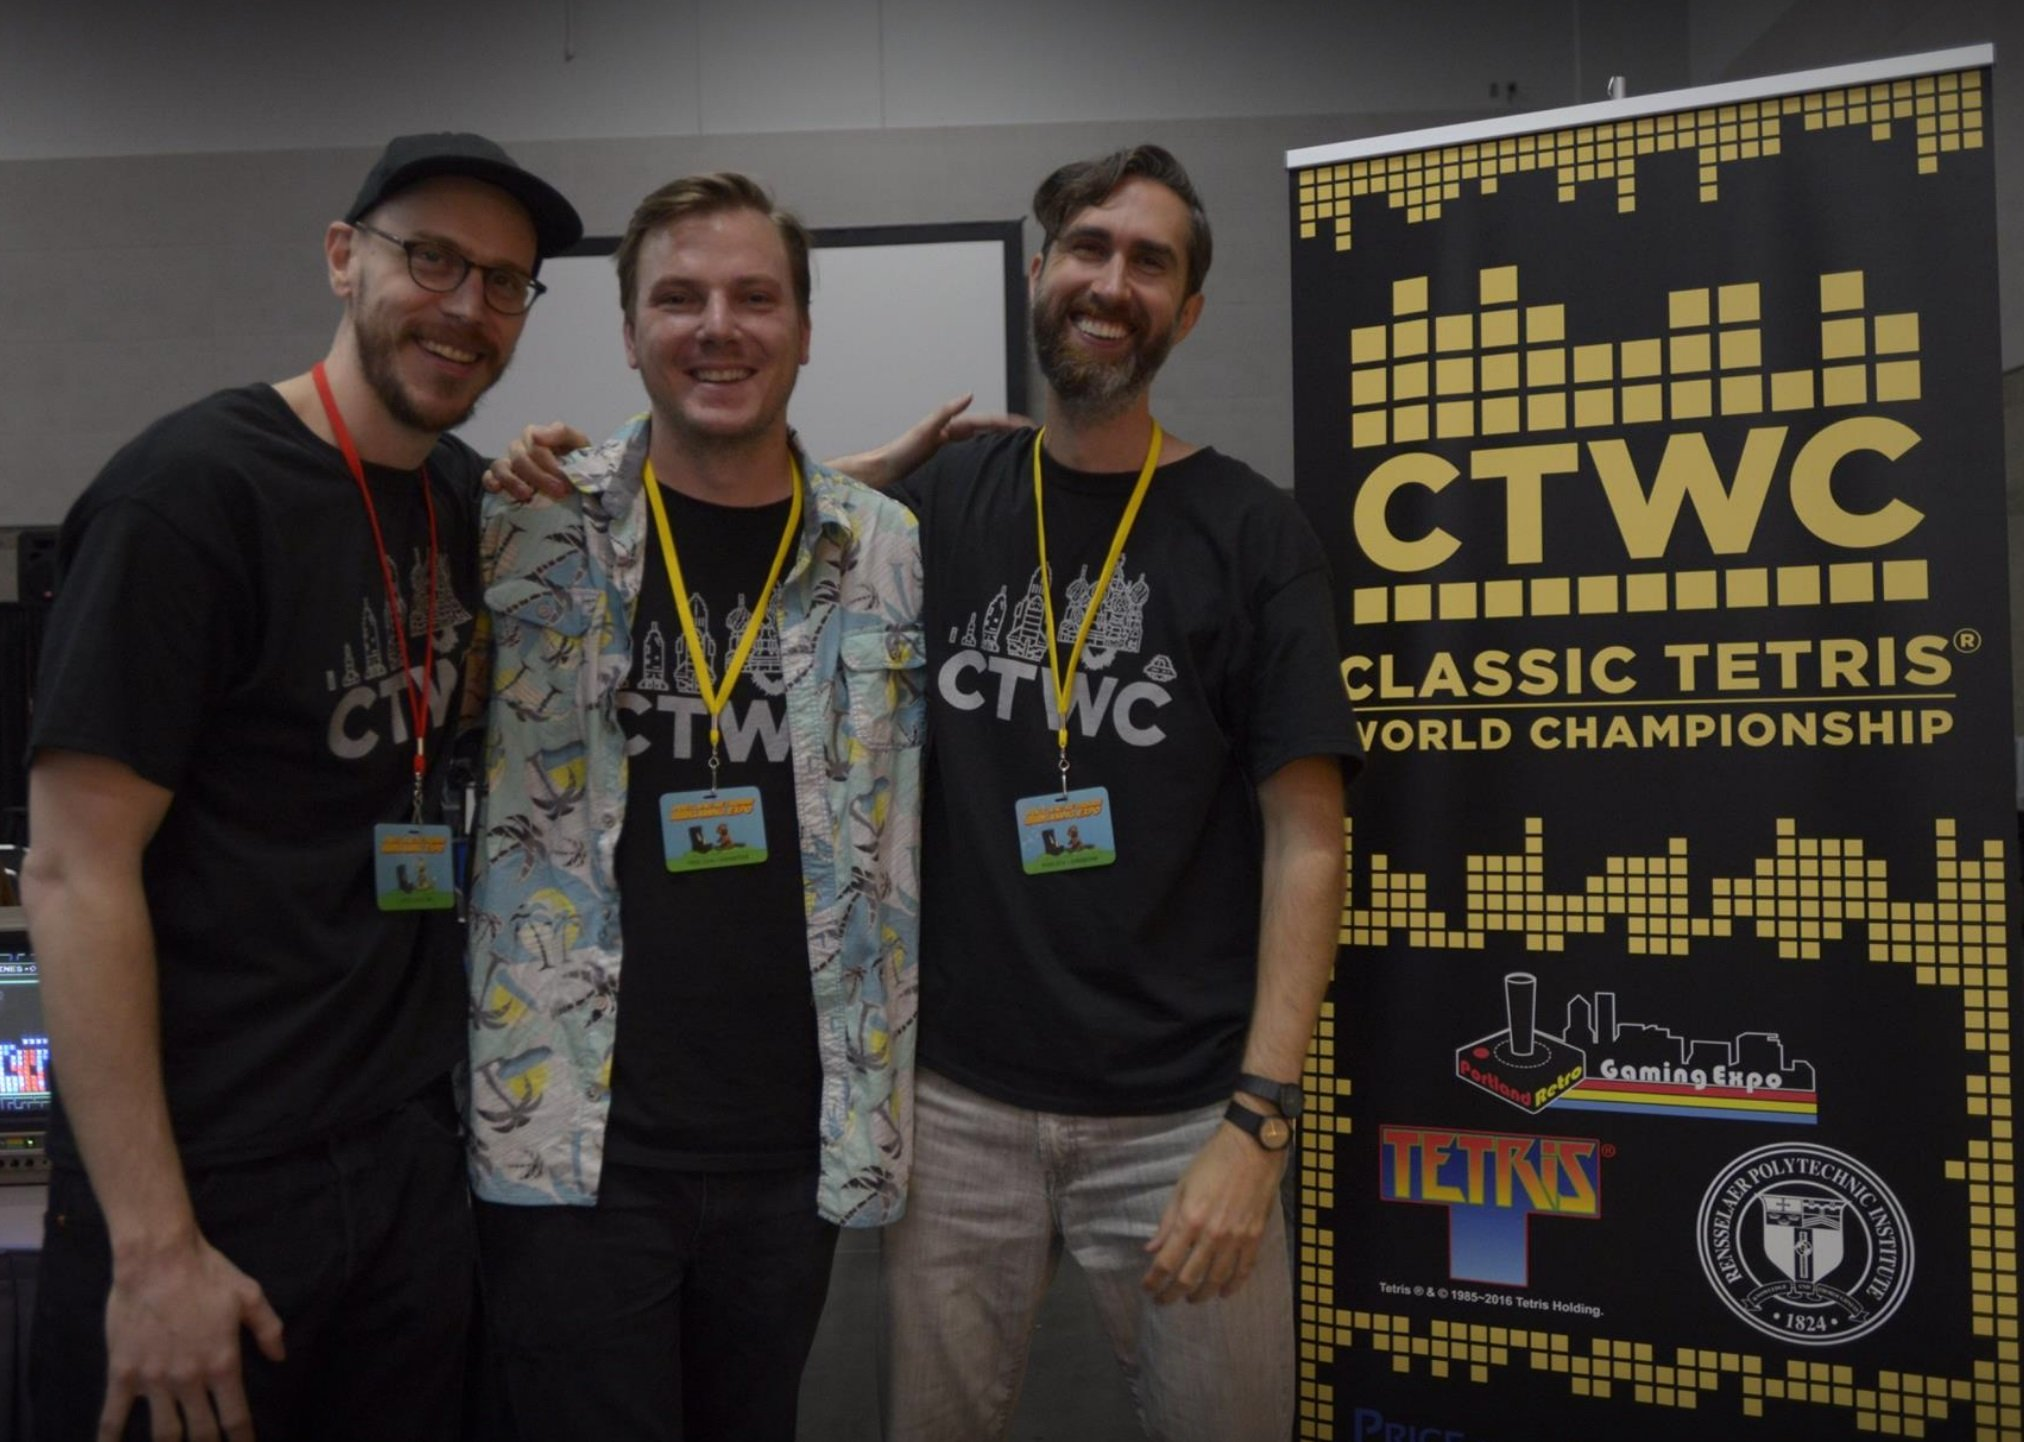 Exploring The Ctwc With Vince Clemente Tetris